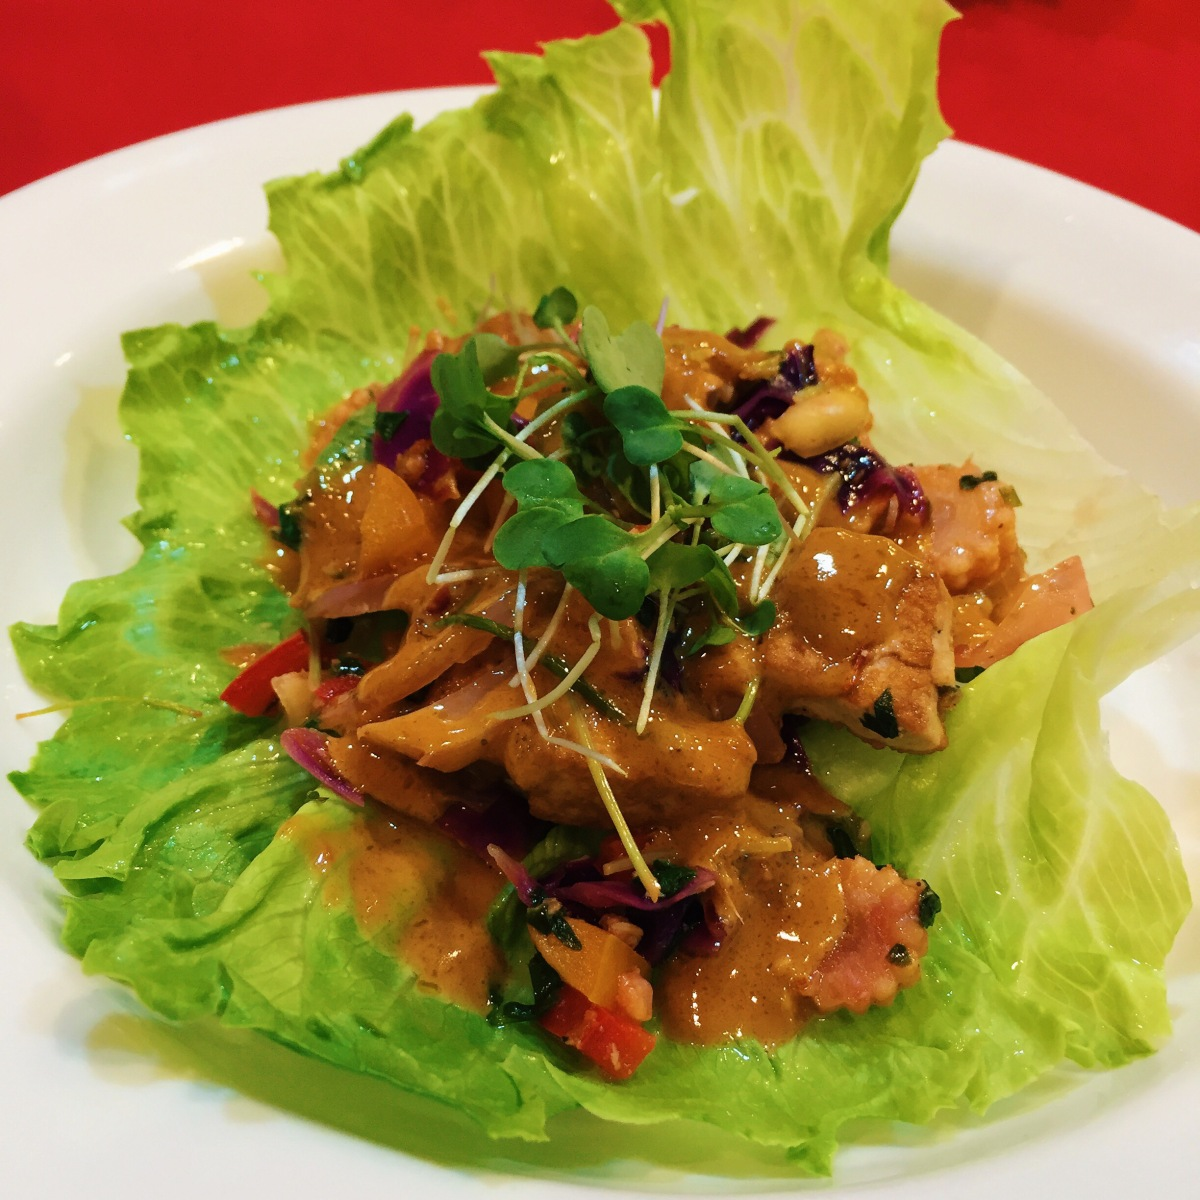 Asian Lettuce Wraps with Chili Peanut Sauce